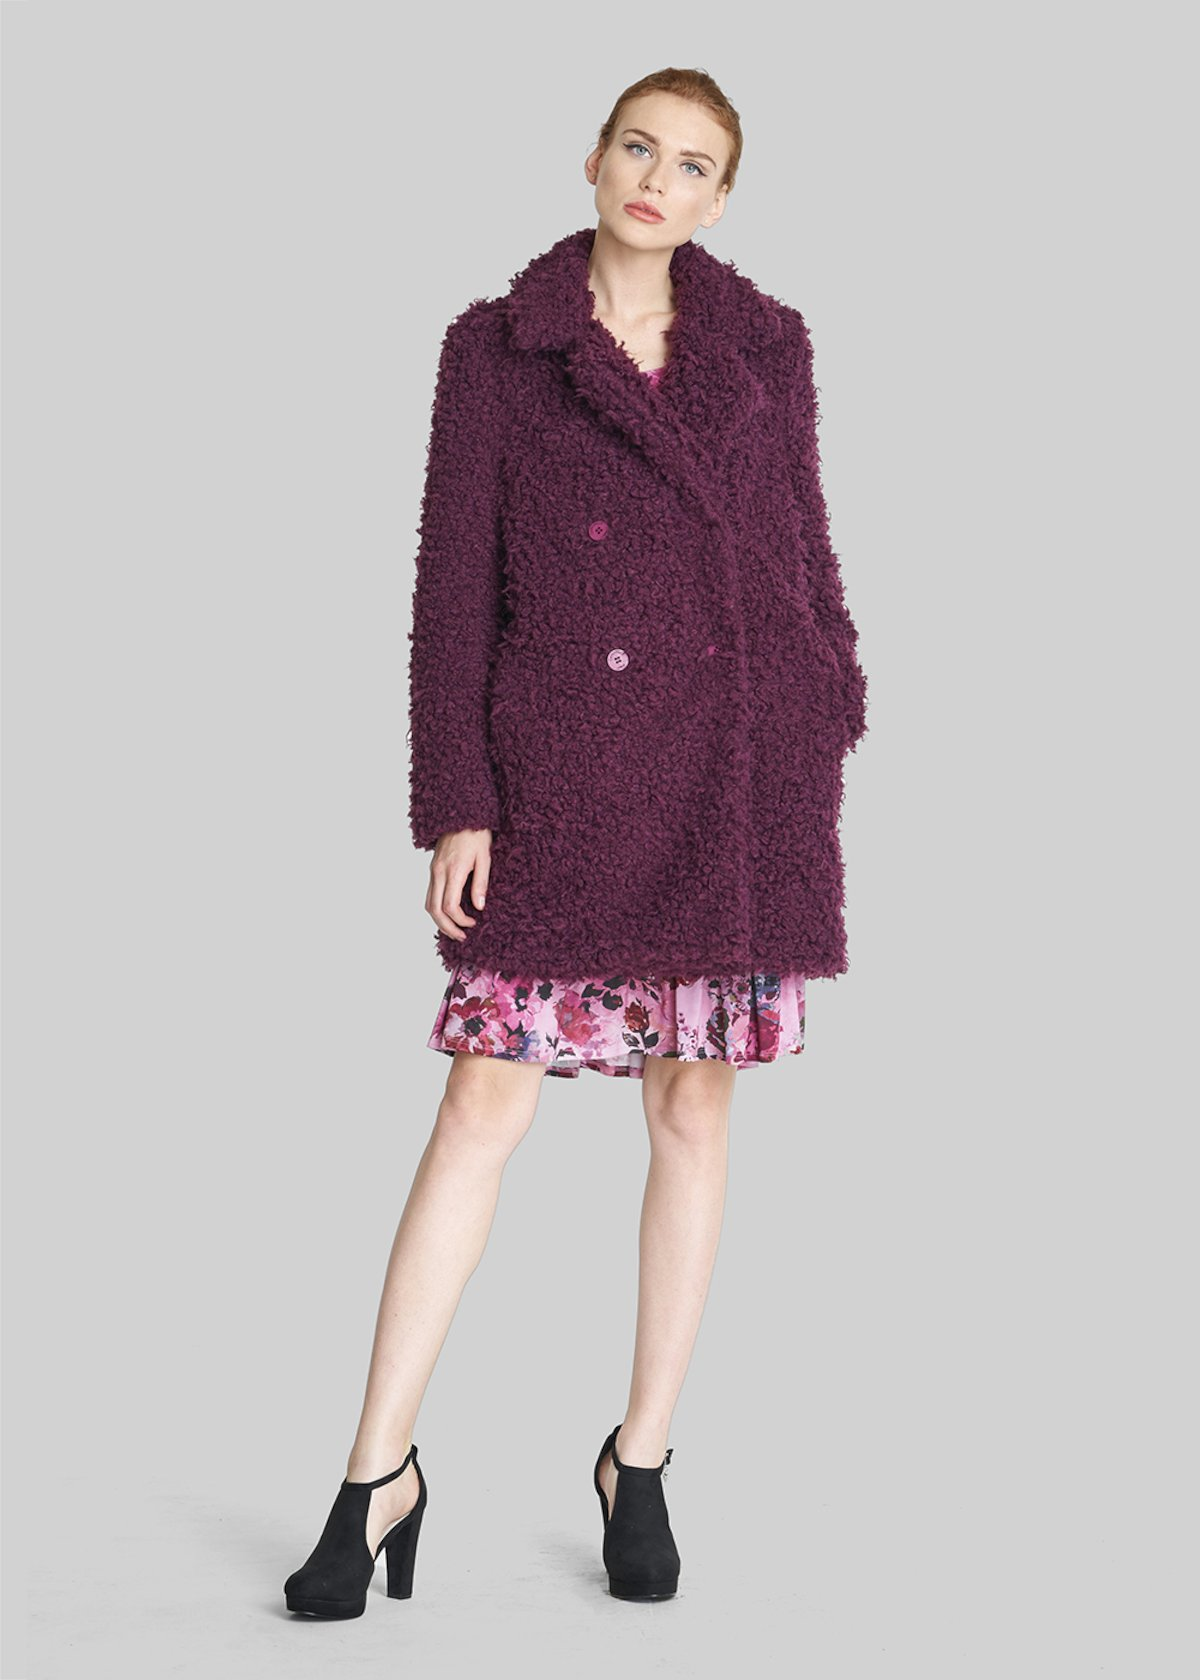 Carlos Faux fur with lapel collar - Purple - Woman - Category image